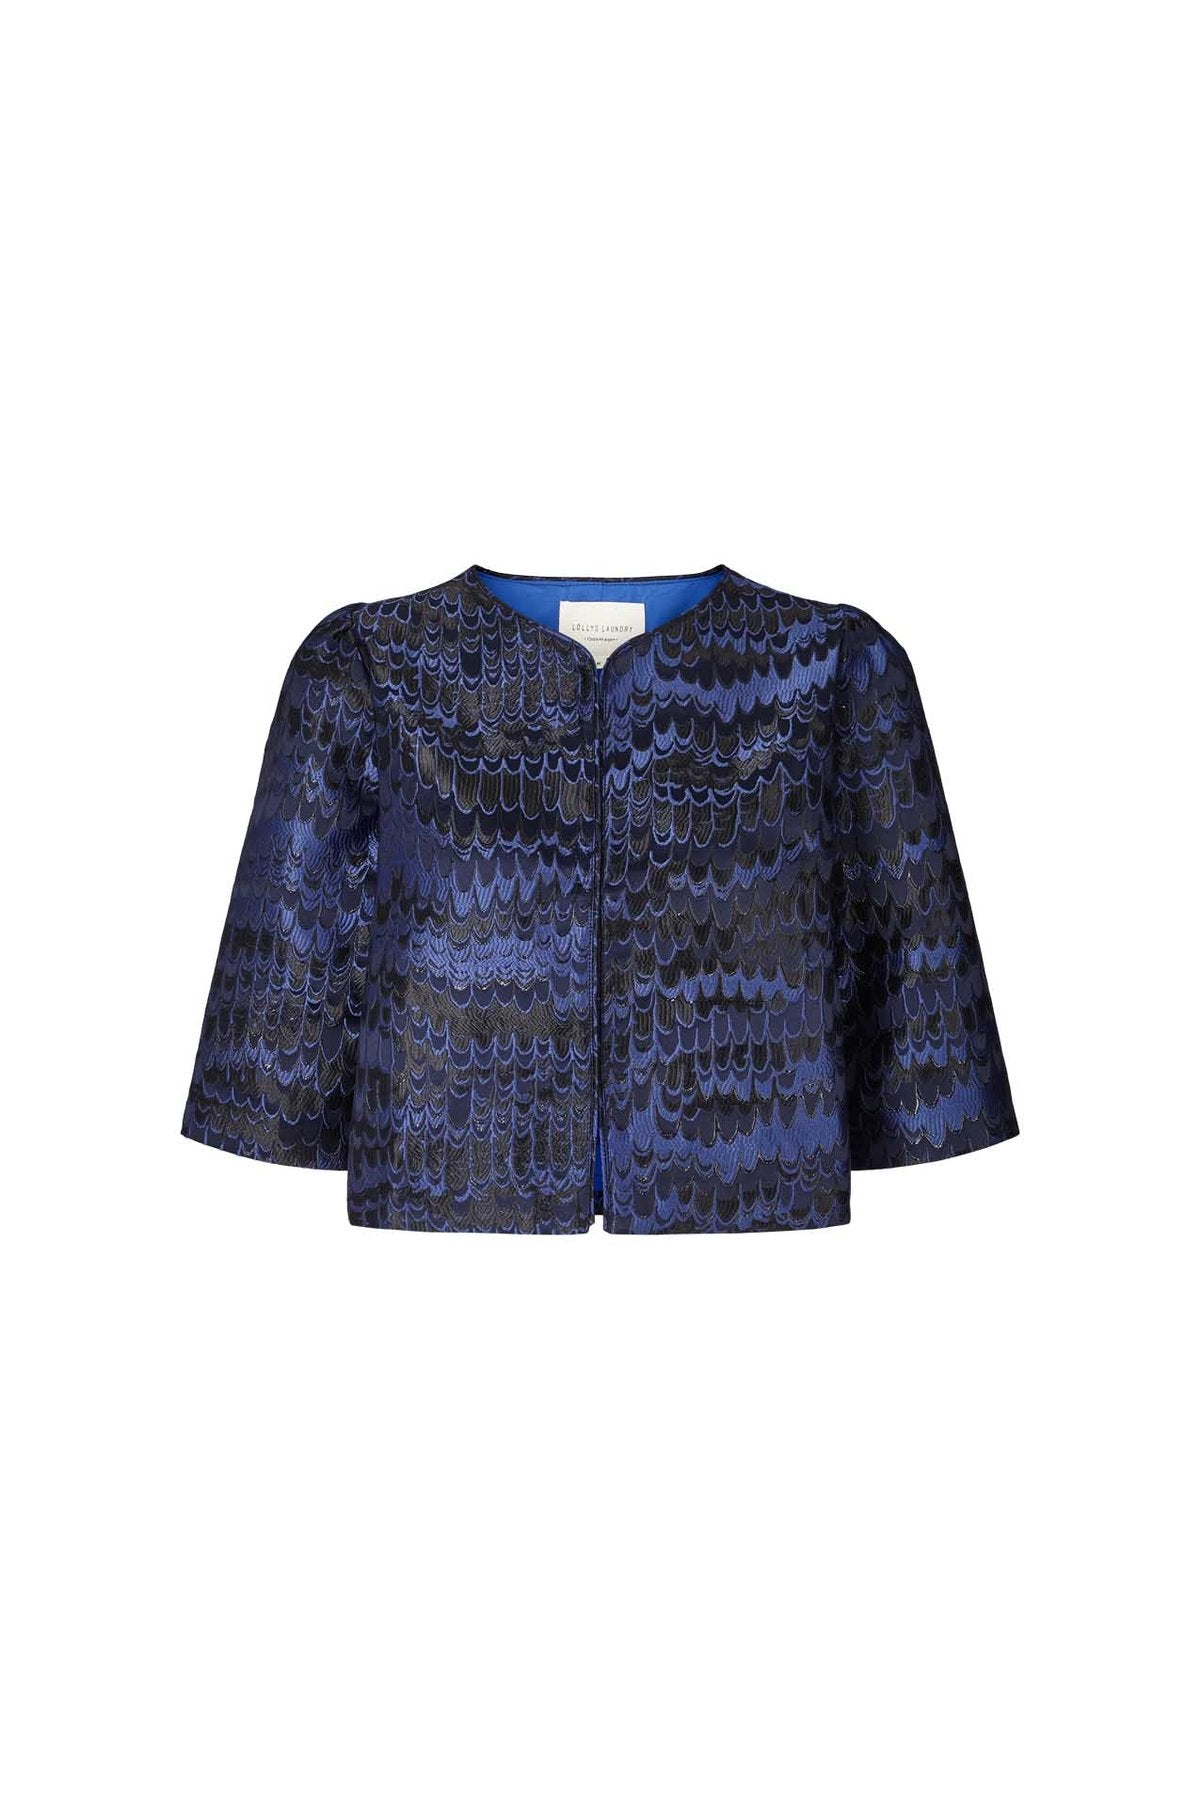 Lollys Laundry Trine Jacket - Dark Blue